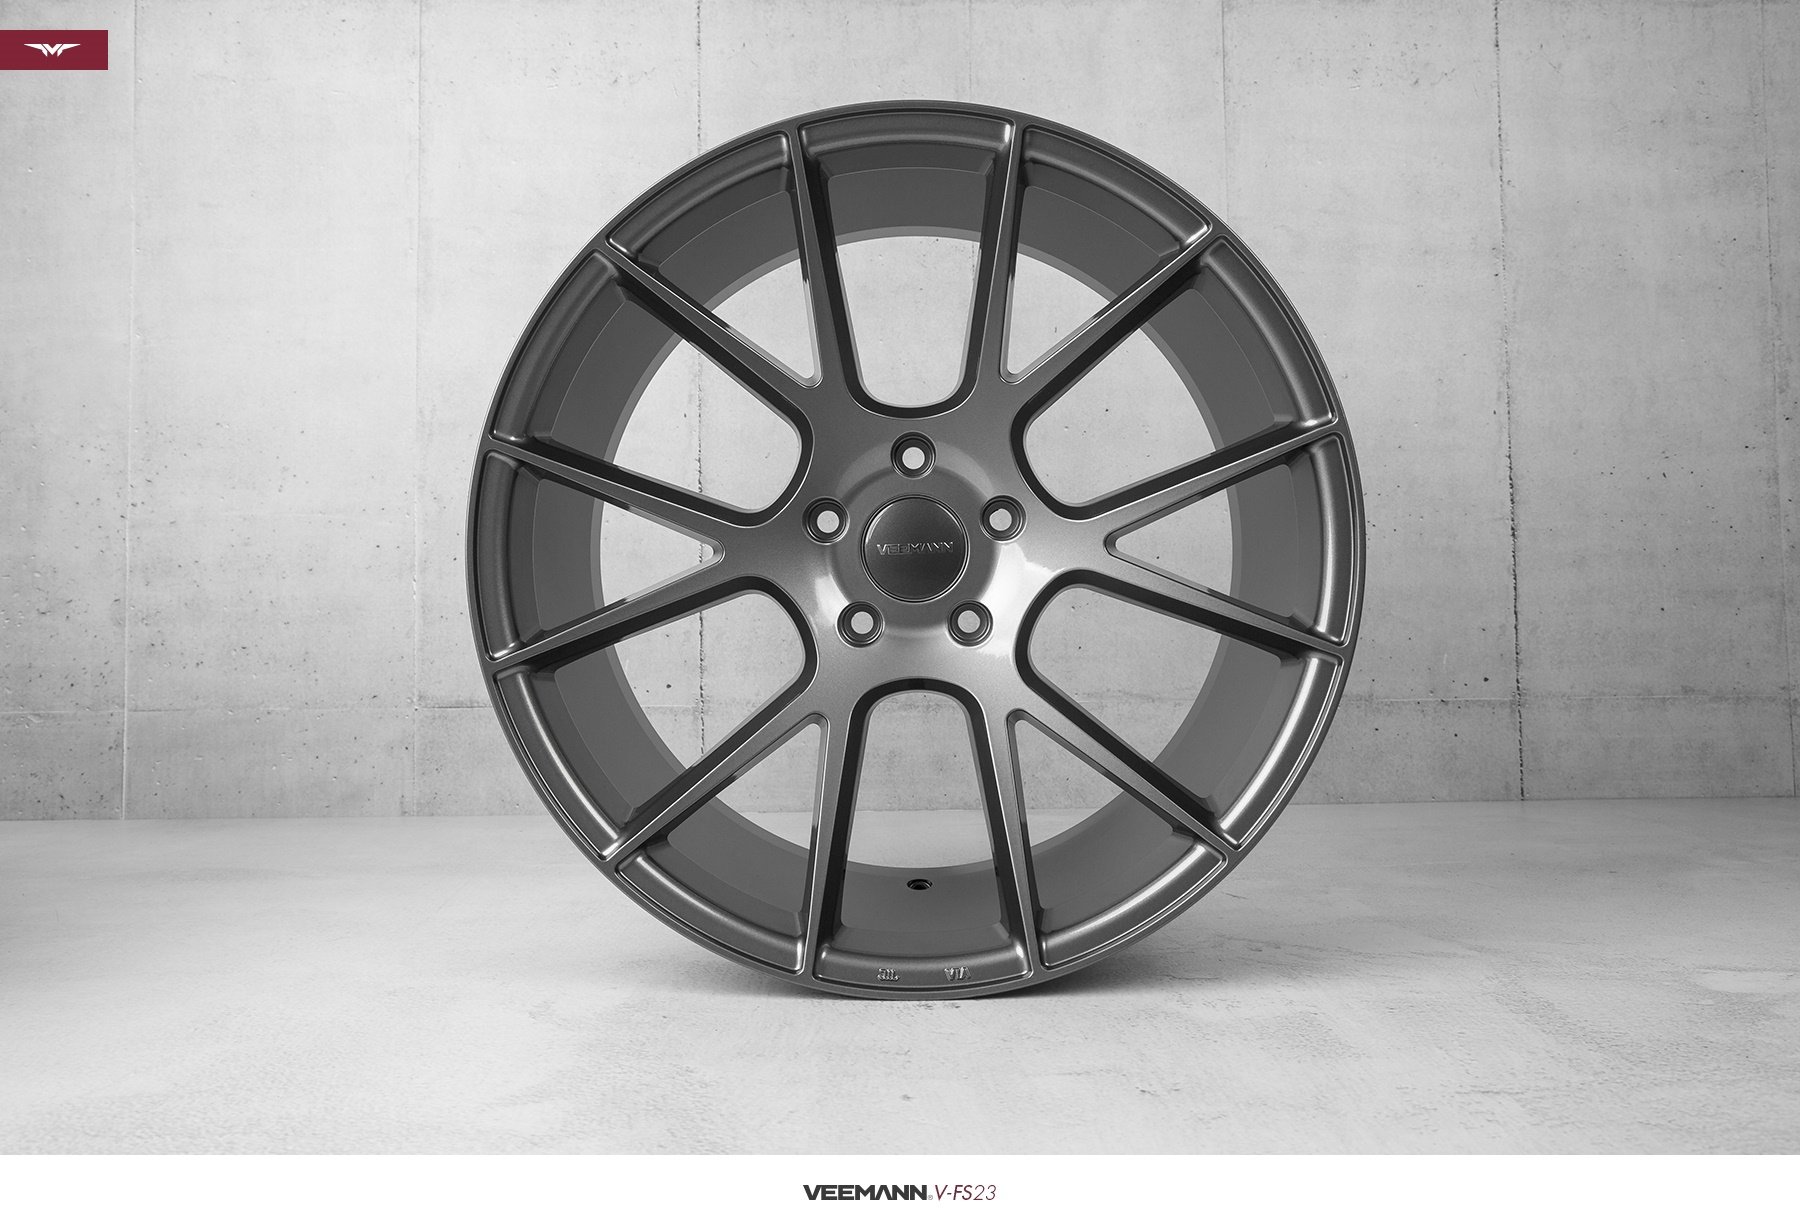 "NEW 18"" VEEMANN V-FS23 ALLOY WHEELS IN GLOSS GRAPHITE WITH WIDER 9"" REARS"